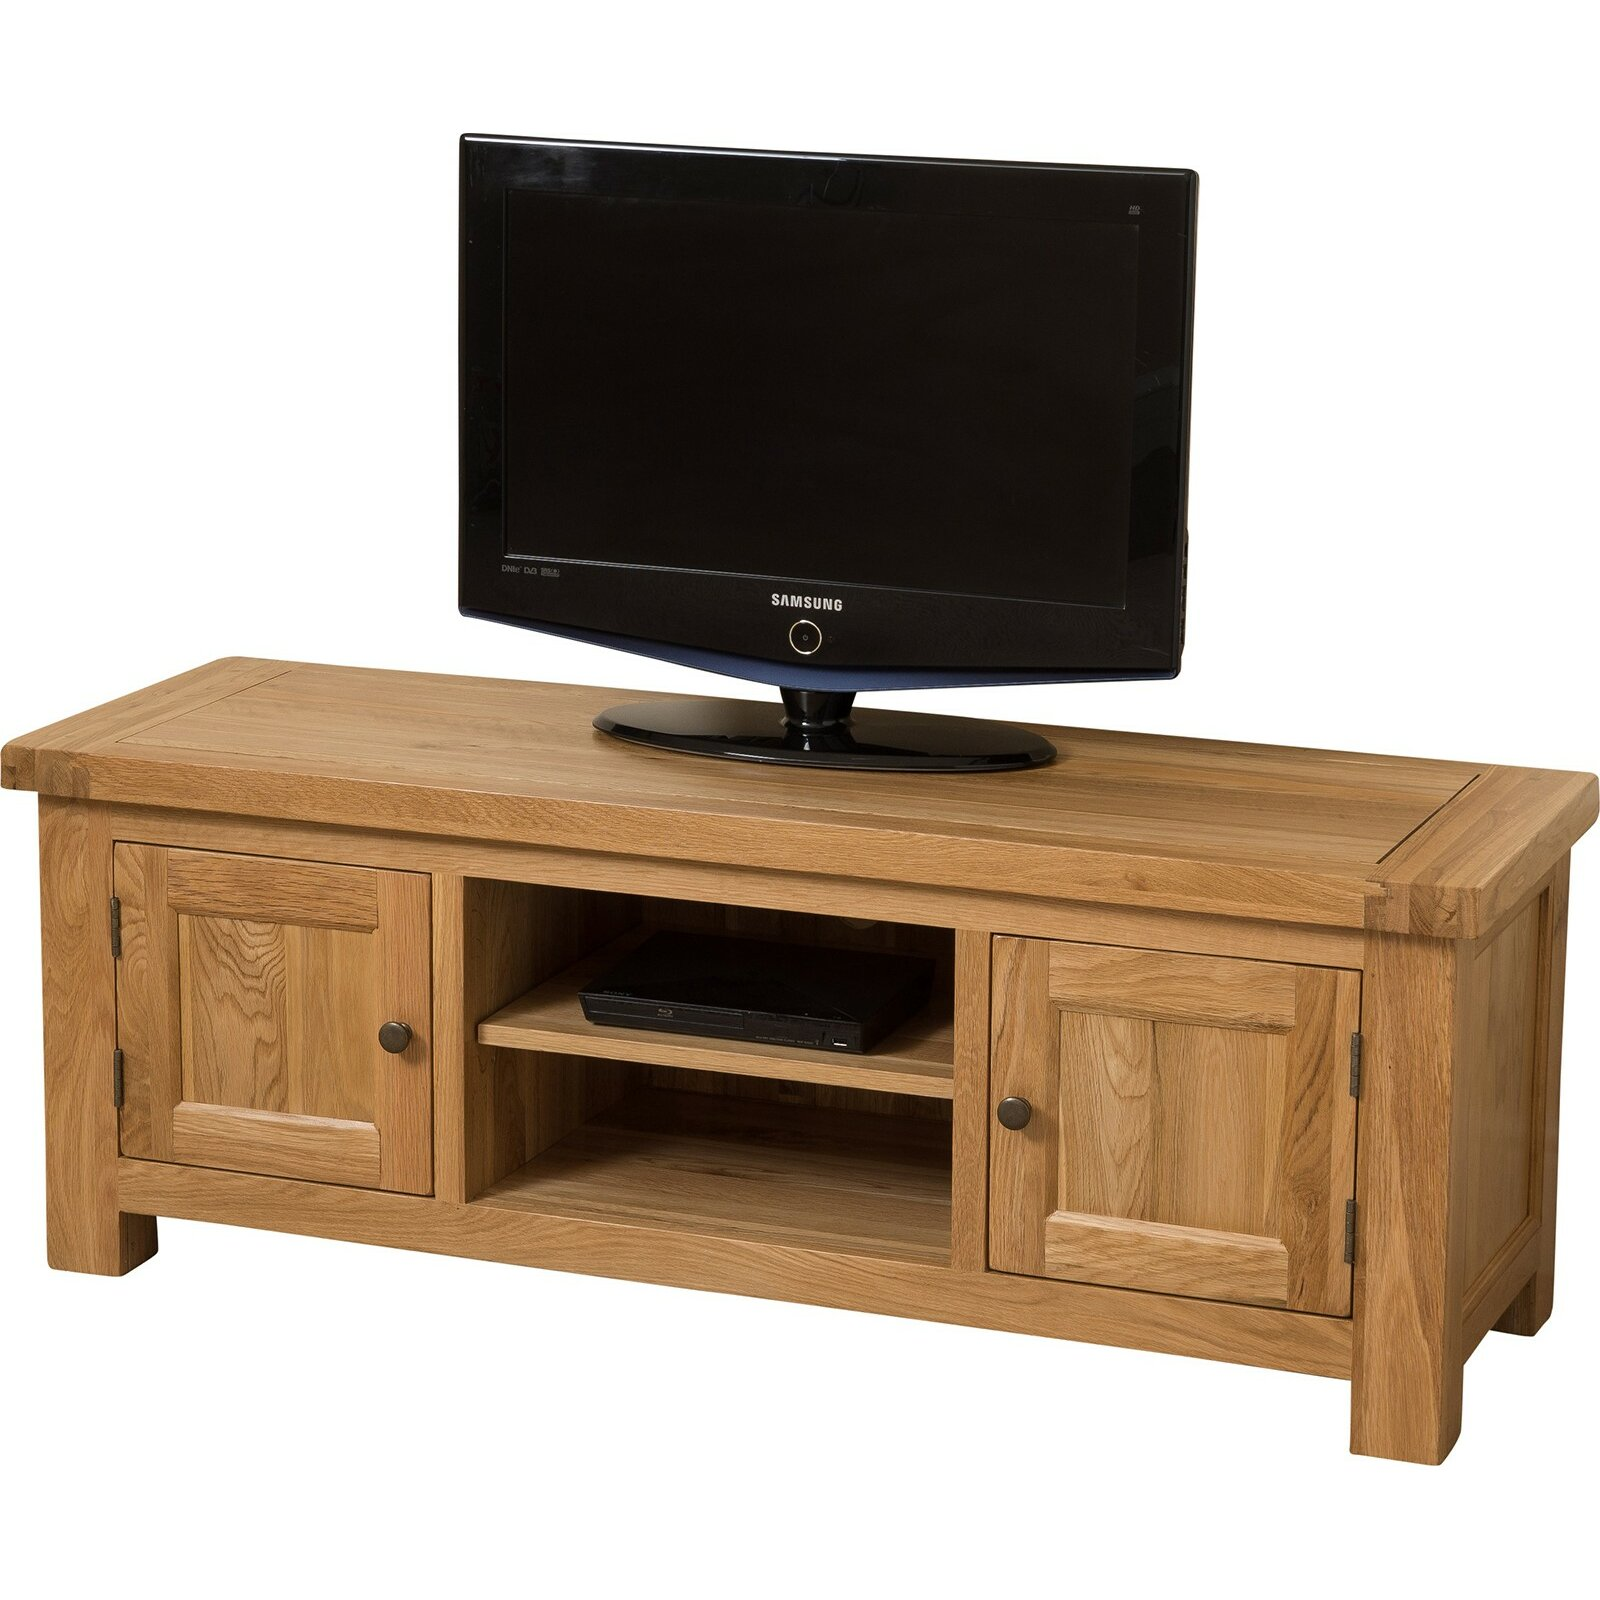 Hokku Designs Cottage Widescreen Tv Stand For Tvs Up To 53